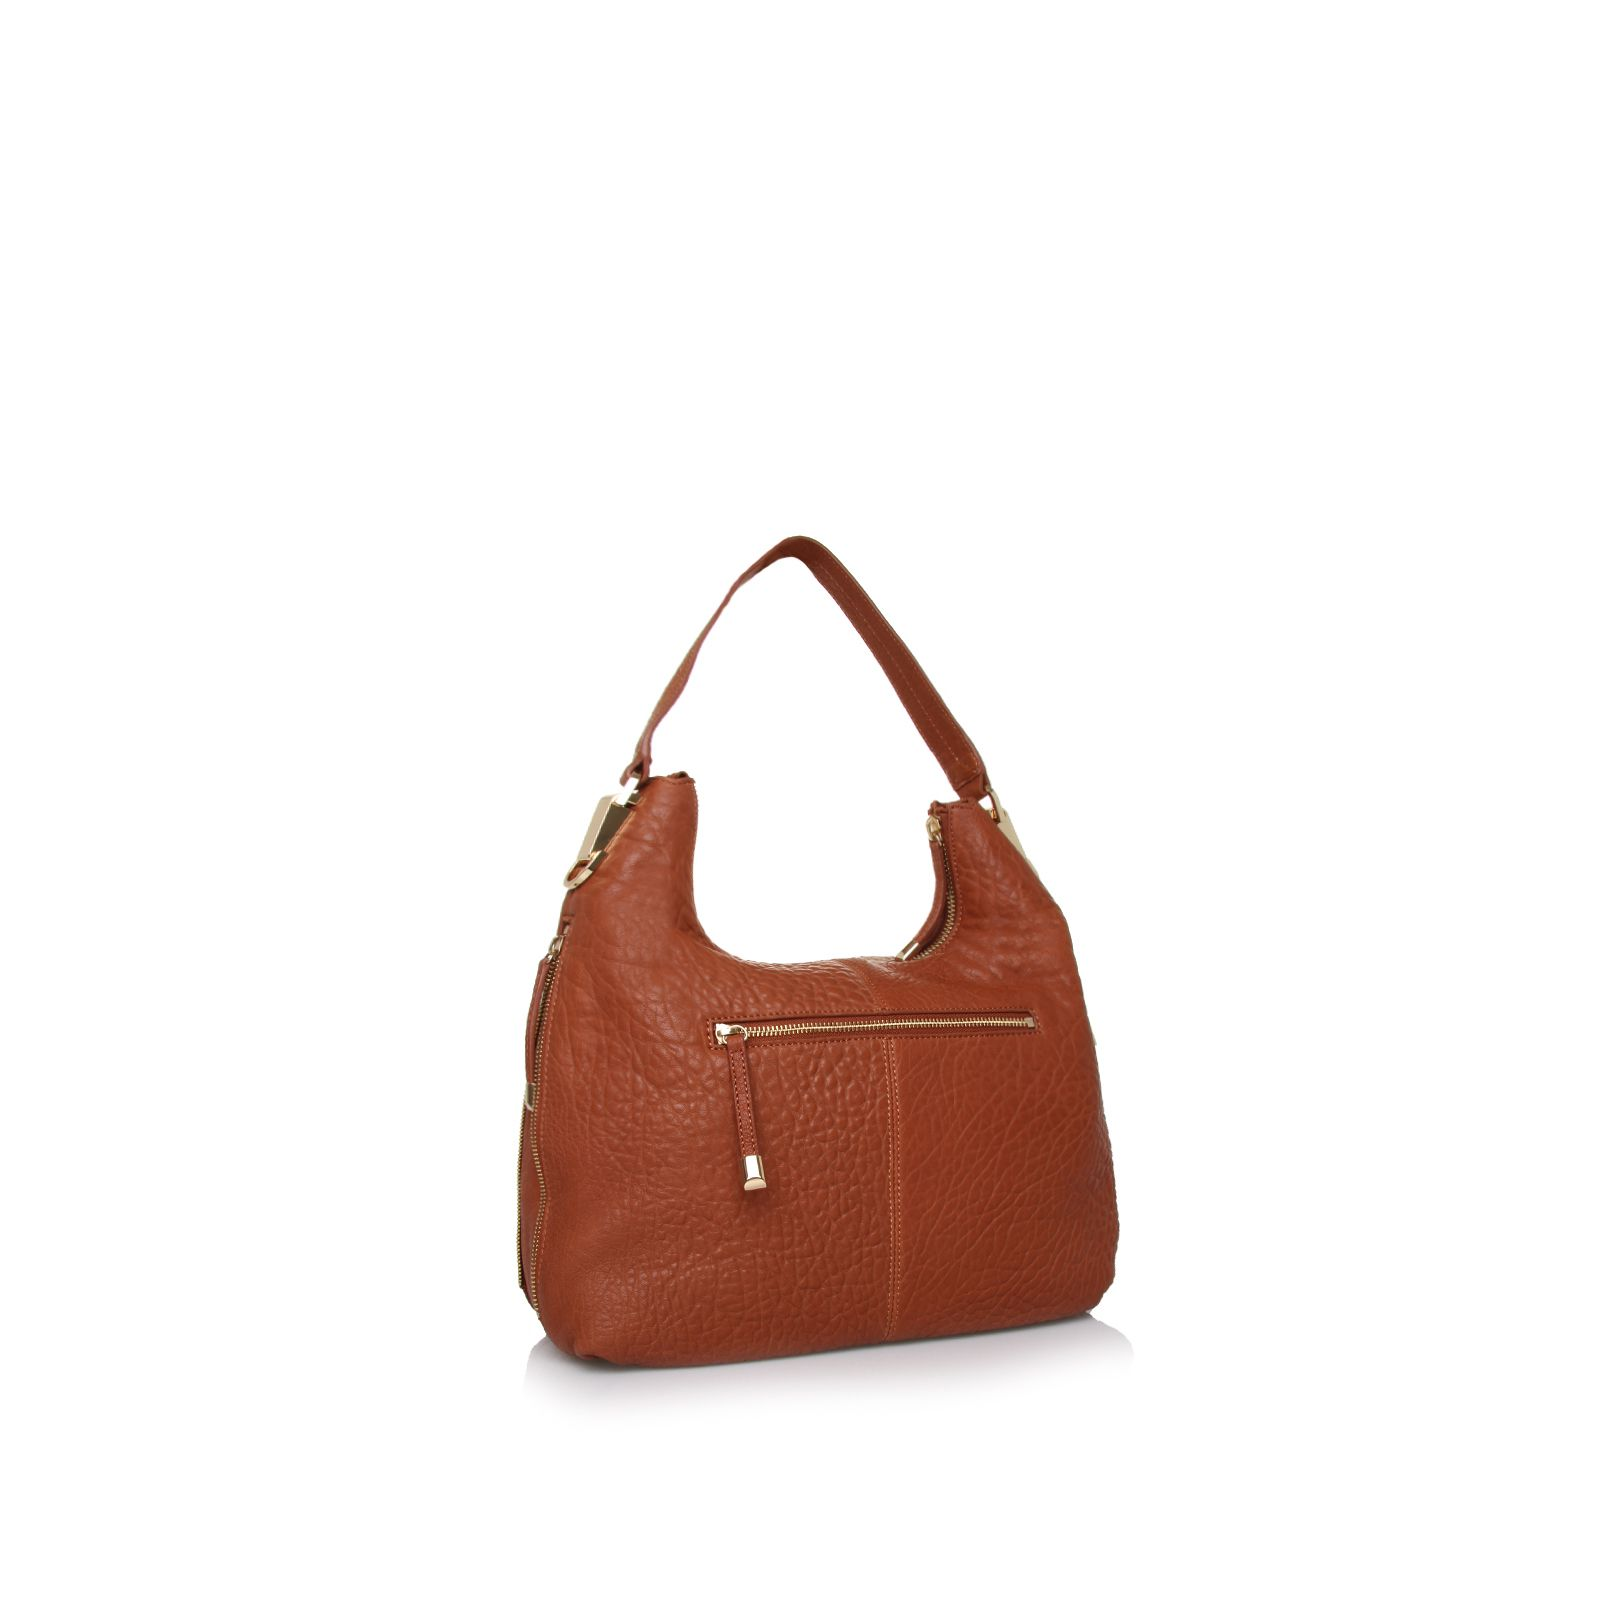 Riley leather hobo bag